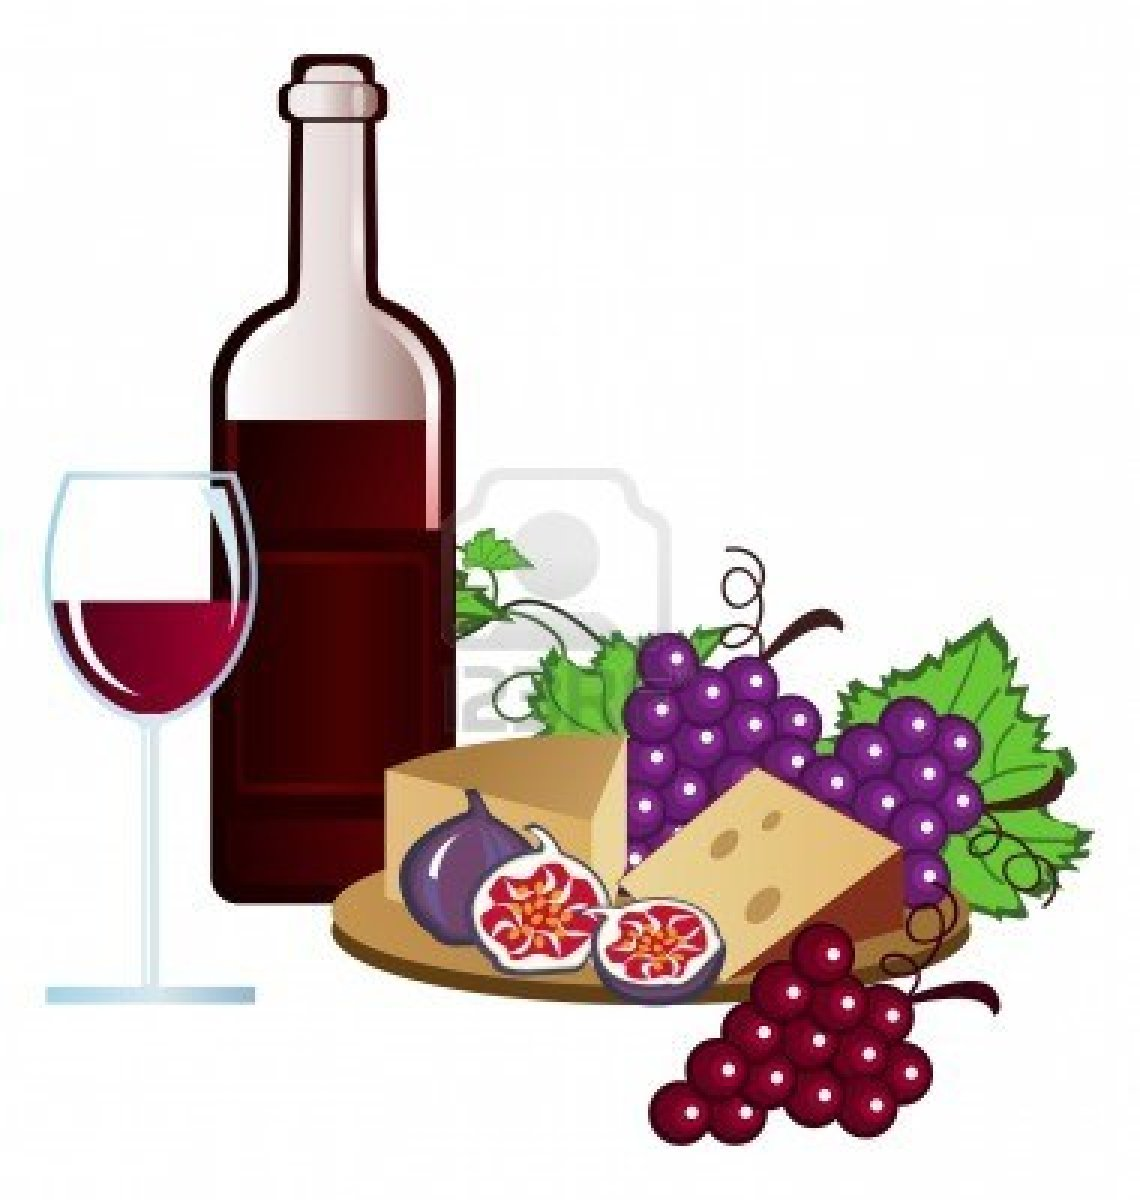 Wine And Cheese Clip Art Viewing Gallery-Wine And Cheese Clip Art Viewing Gallery-8